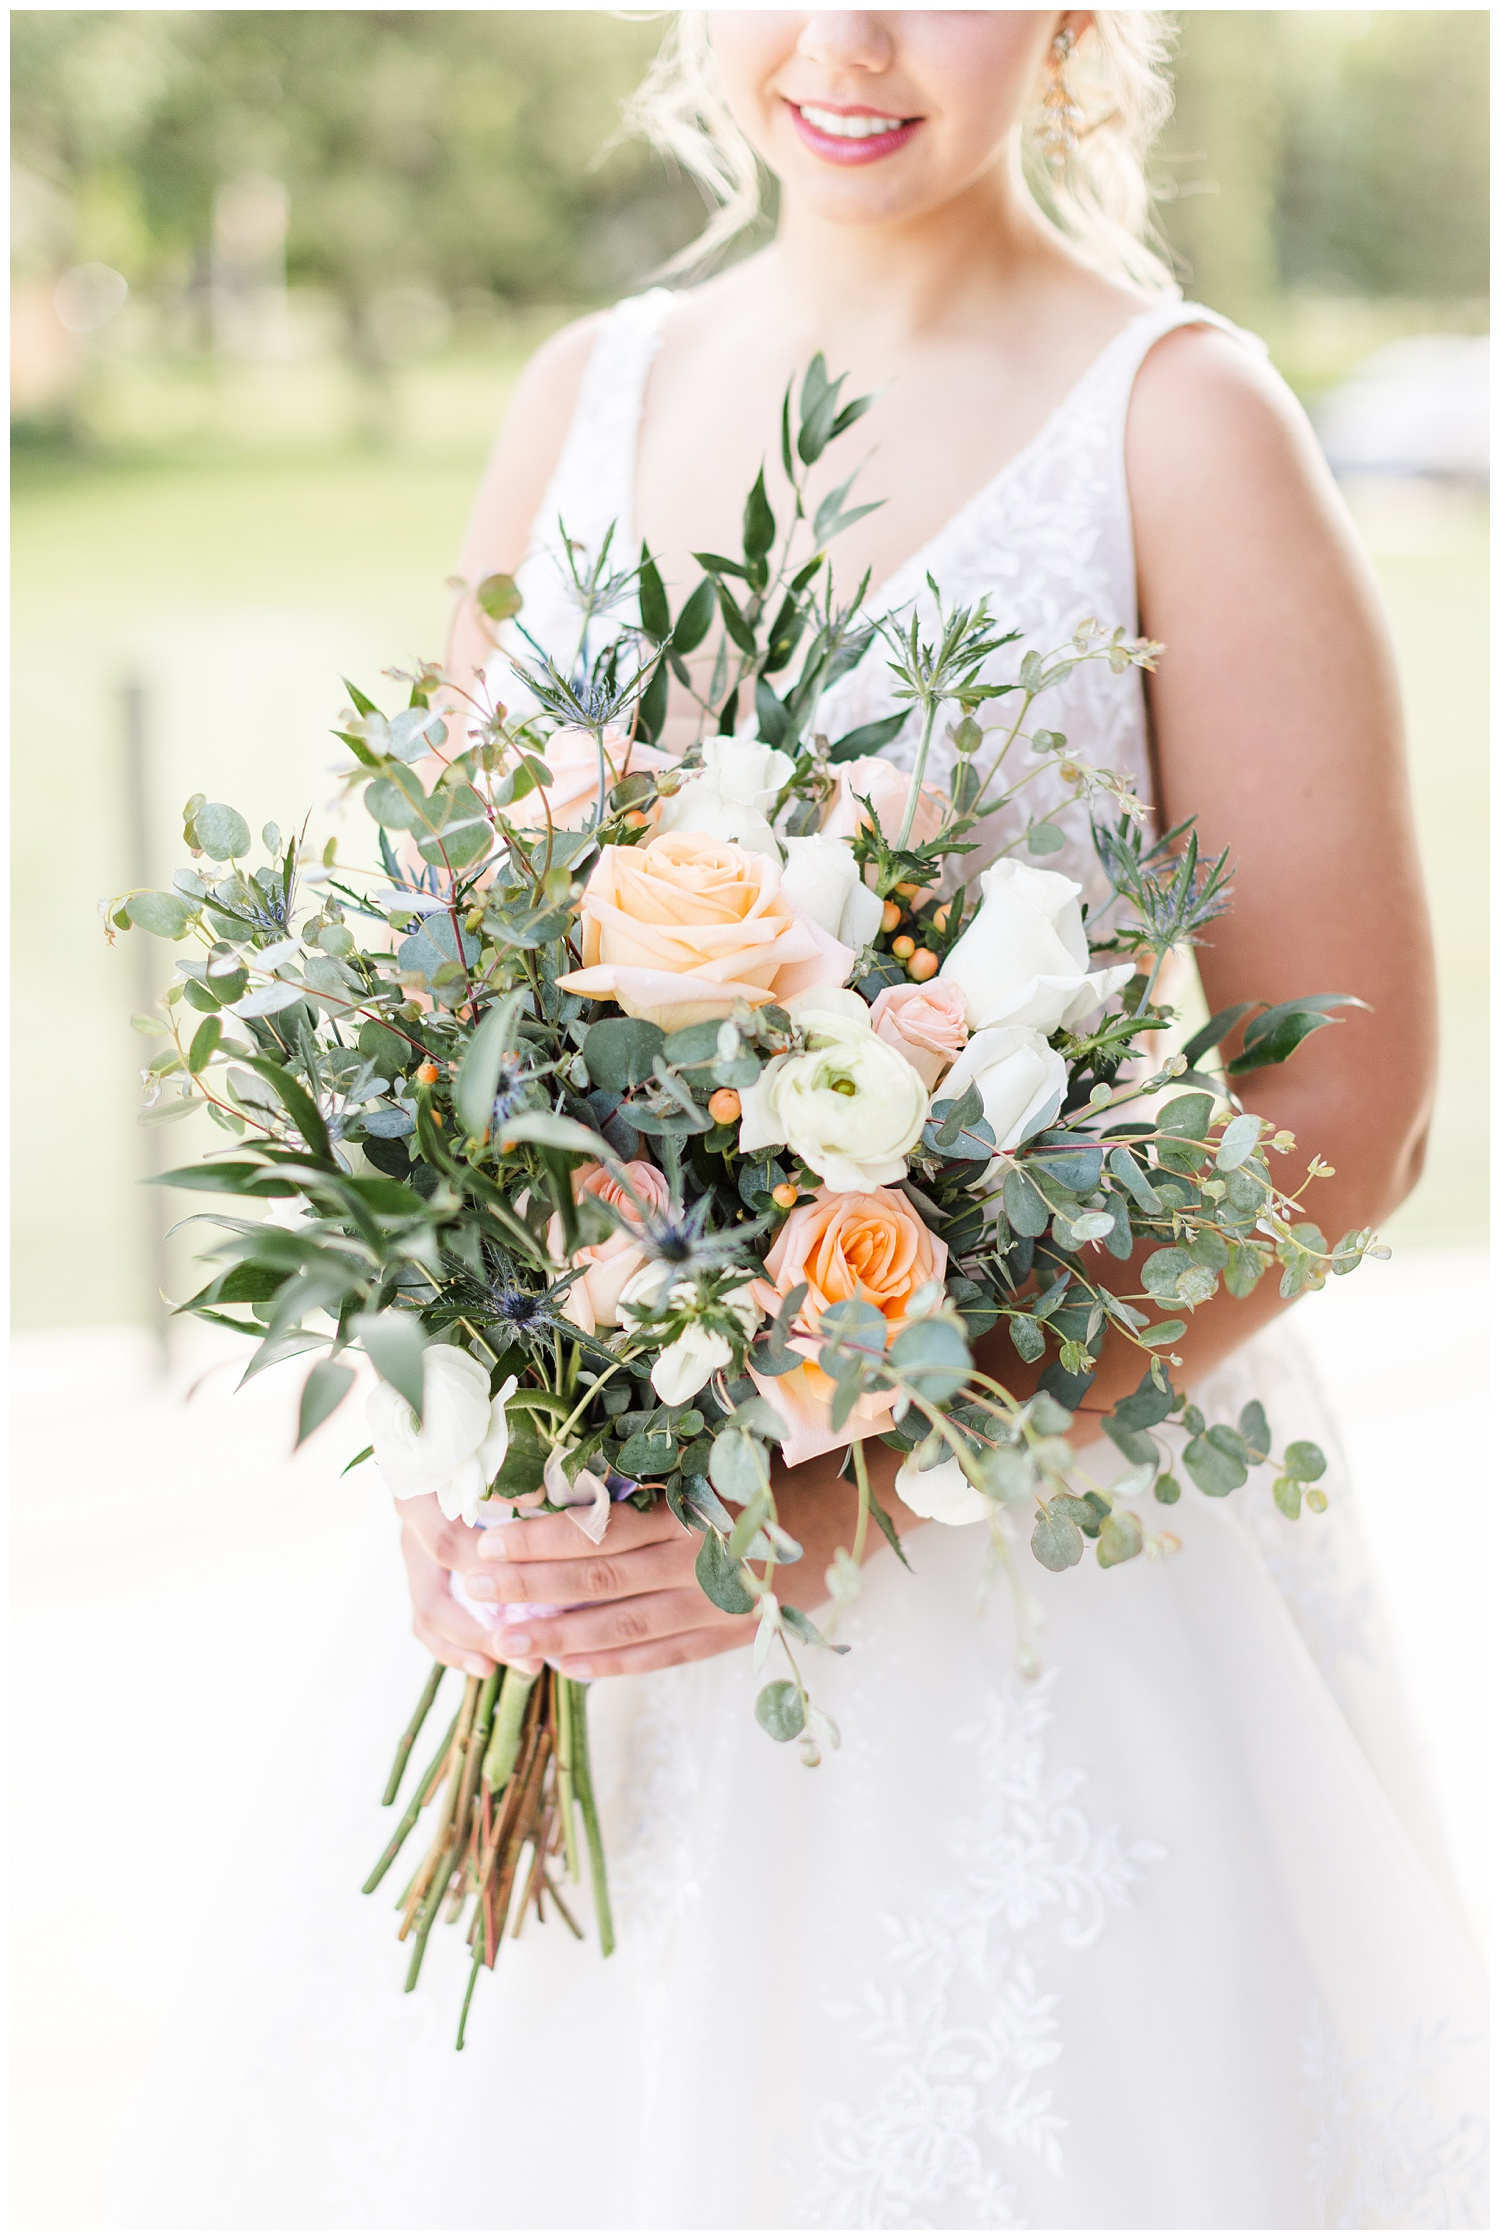 Peach and white rose wedding bouquet with white ranunculus and eucalyptus | CB Studio